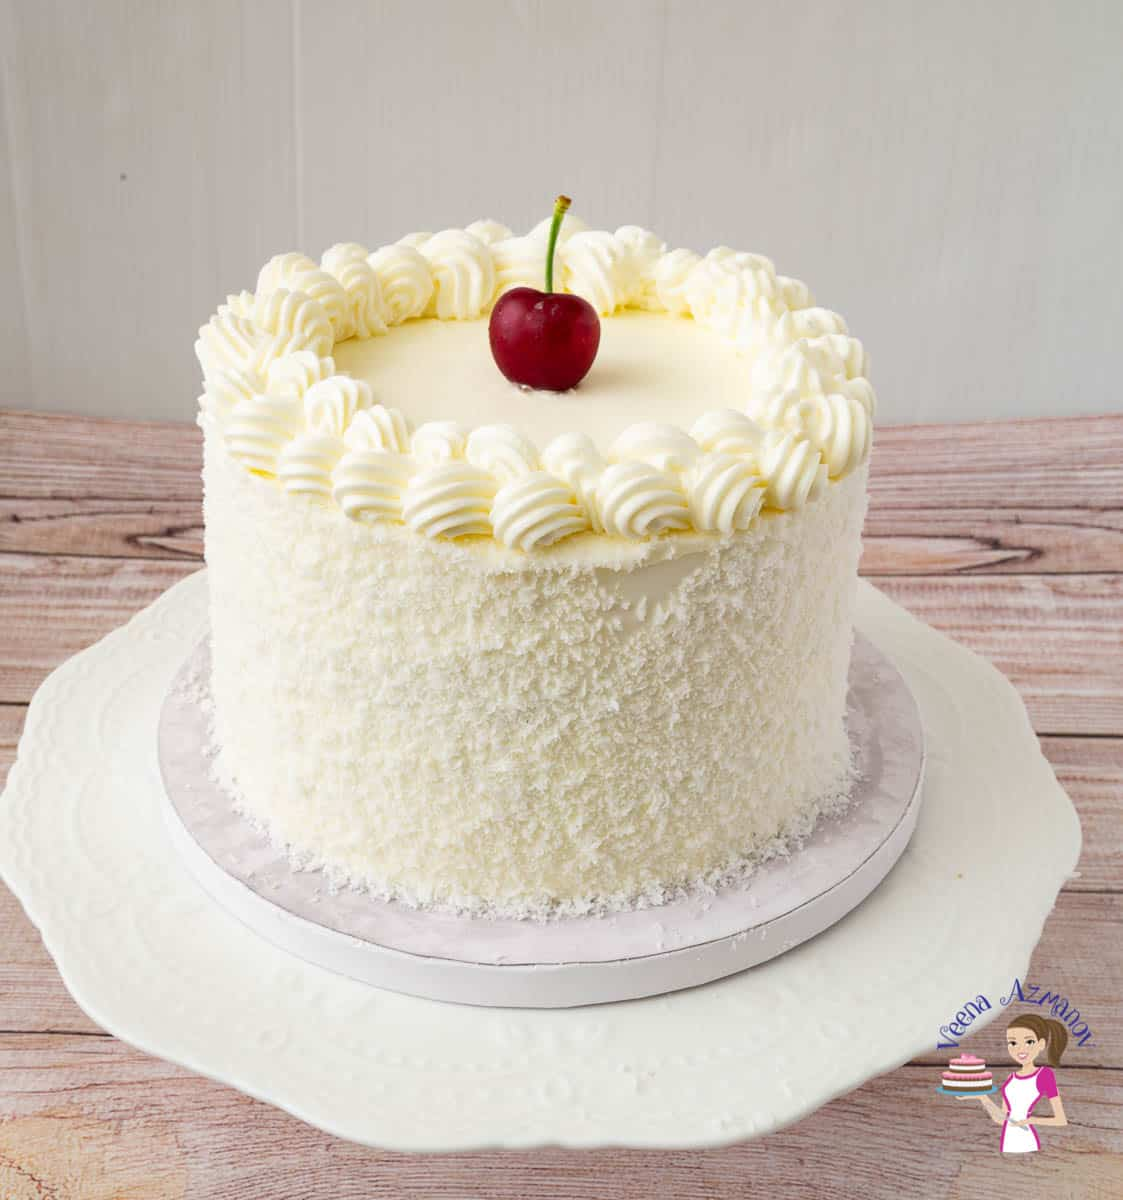 A coconut cake on a cake stand with a cherry on top.